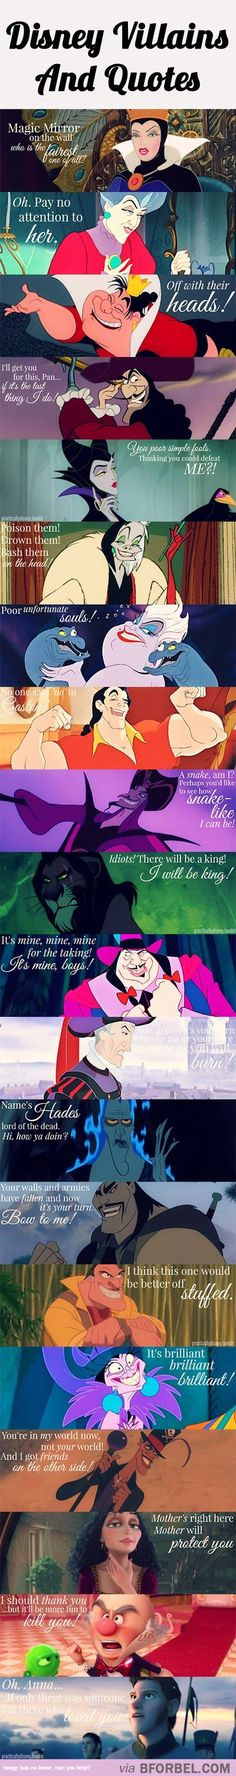 20 Disney Villains And Their Infamous Quotes